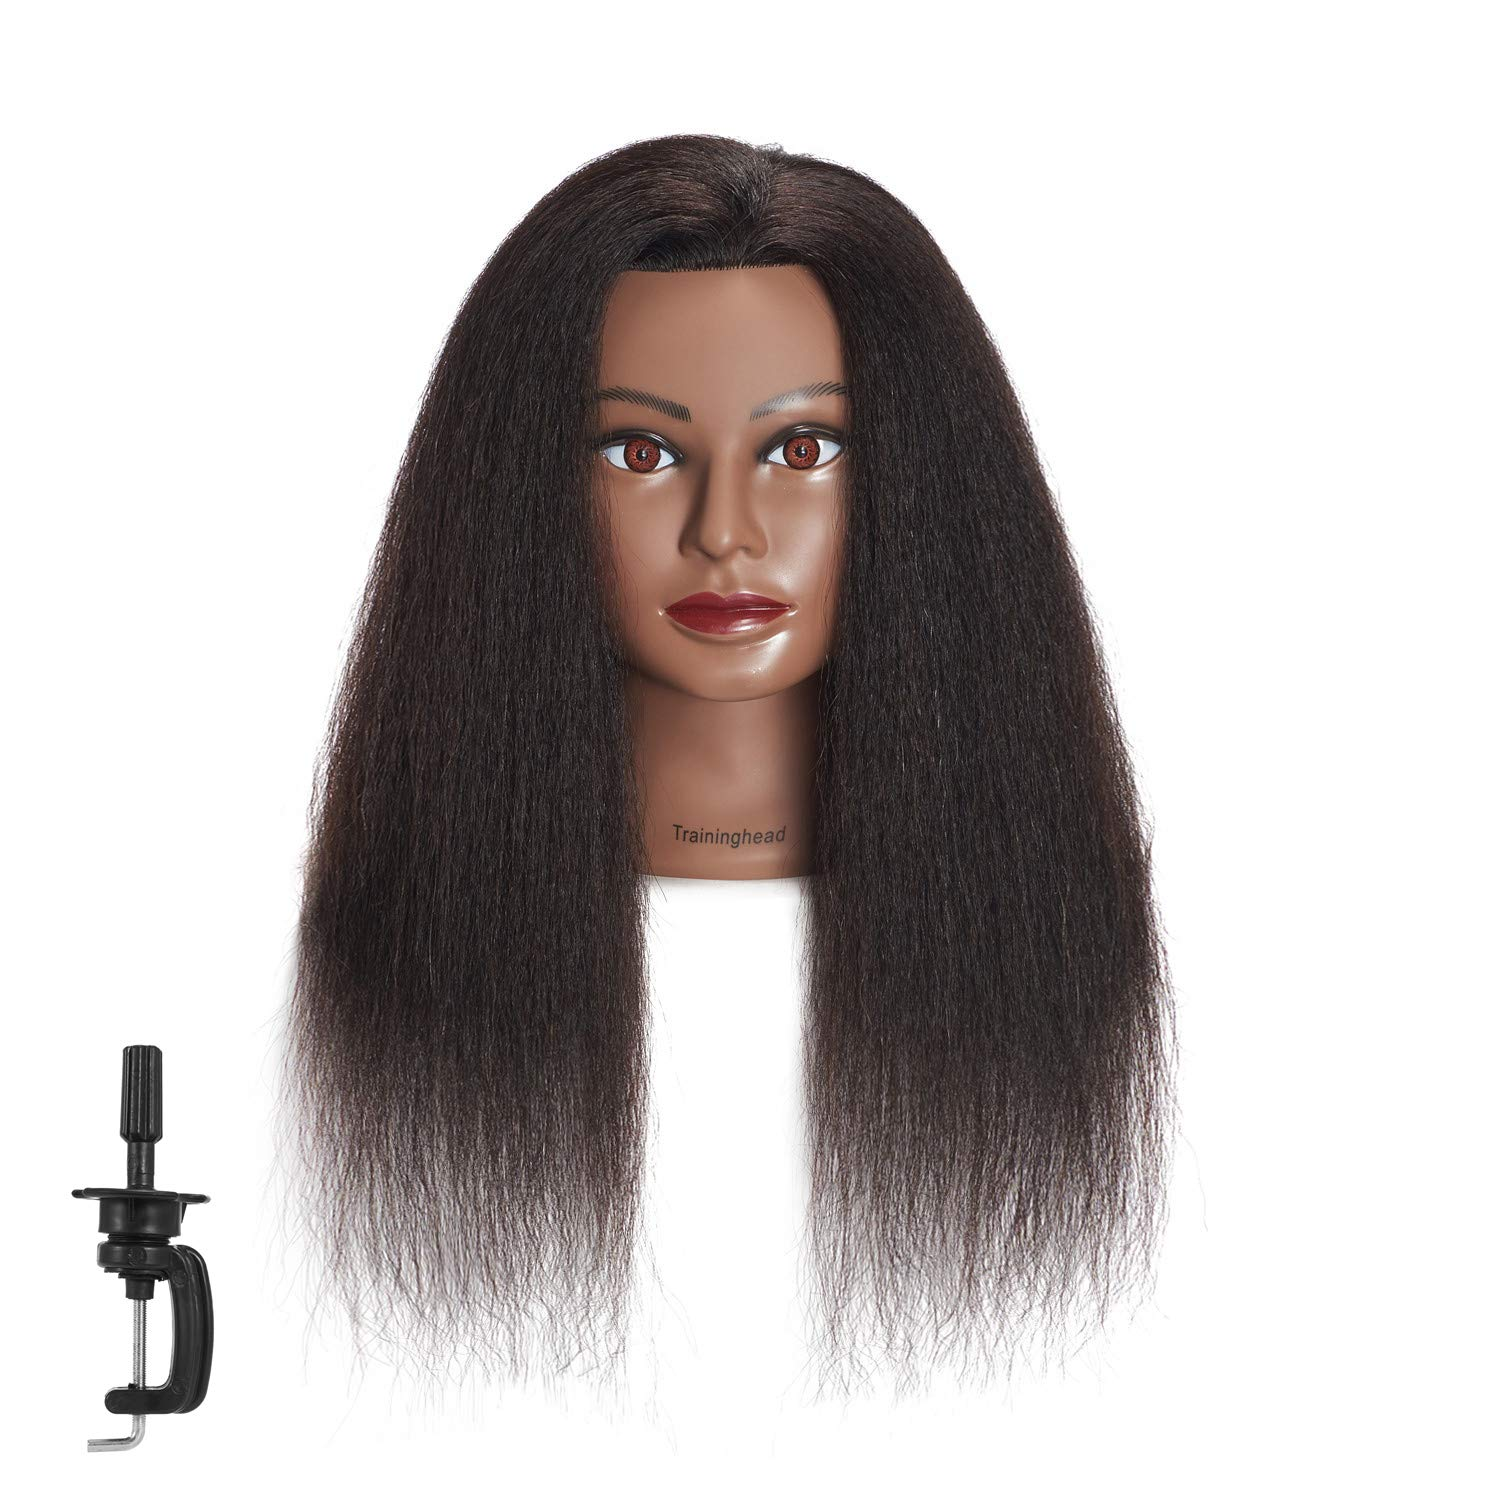 Traininghead 100% Real Hair Afro Mannequin Head Hairdresser Training Practice Head Cosmetology Manikin Head Doll Head With Free Clamp (A) by training head